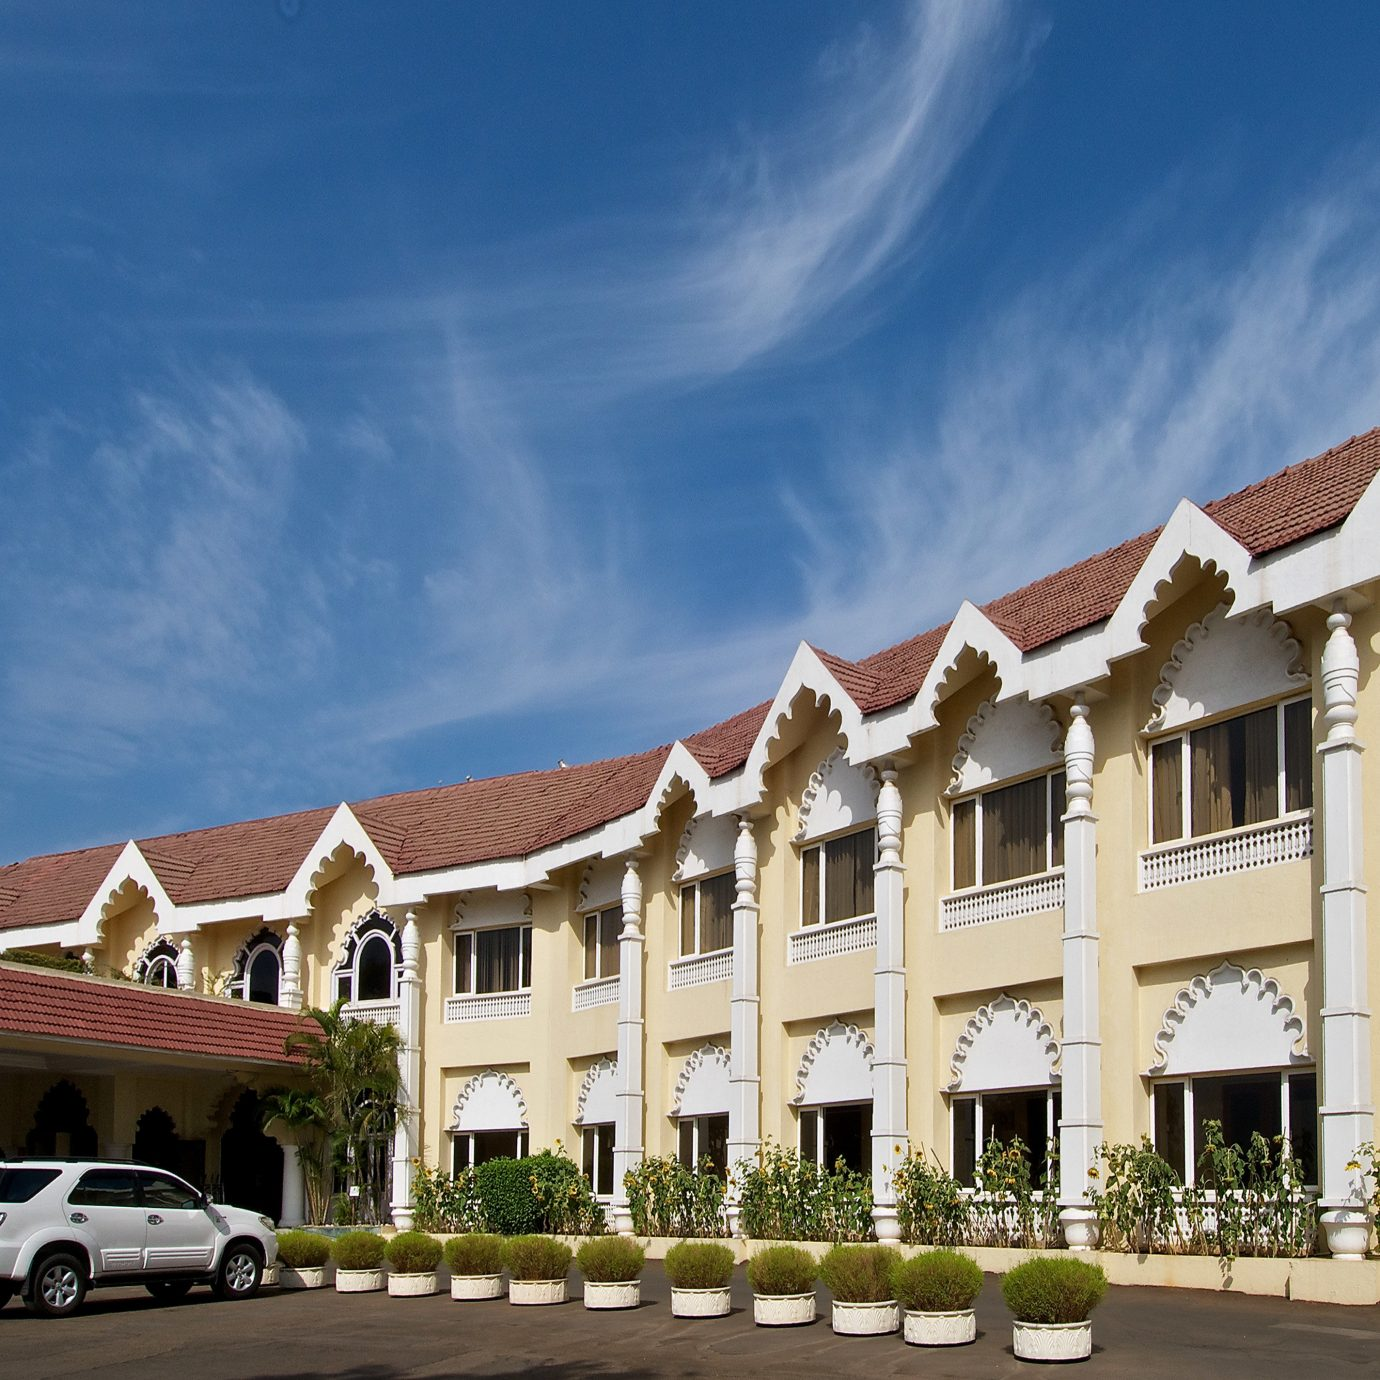 Classic Exterior building sky road property house Architecture neighbourhood residential area home palace Resort government building